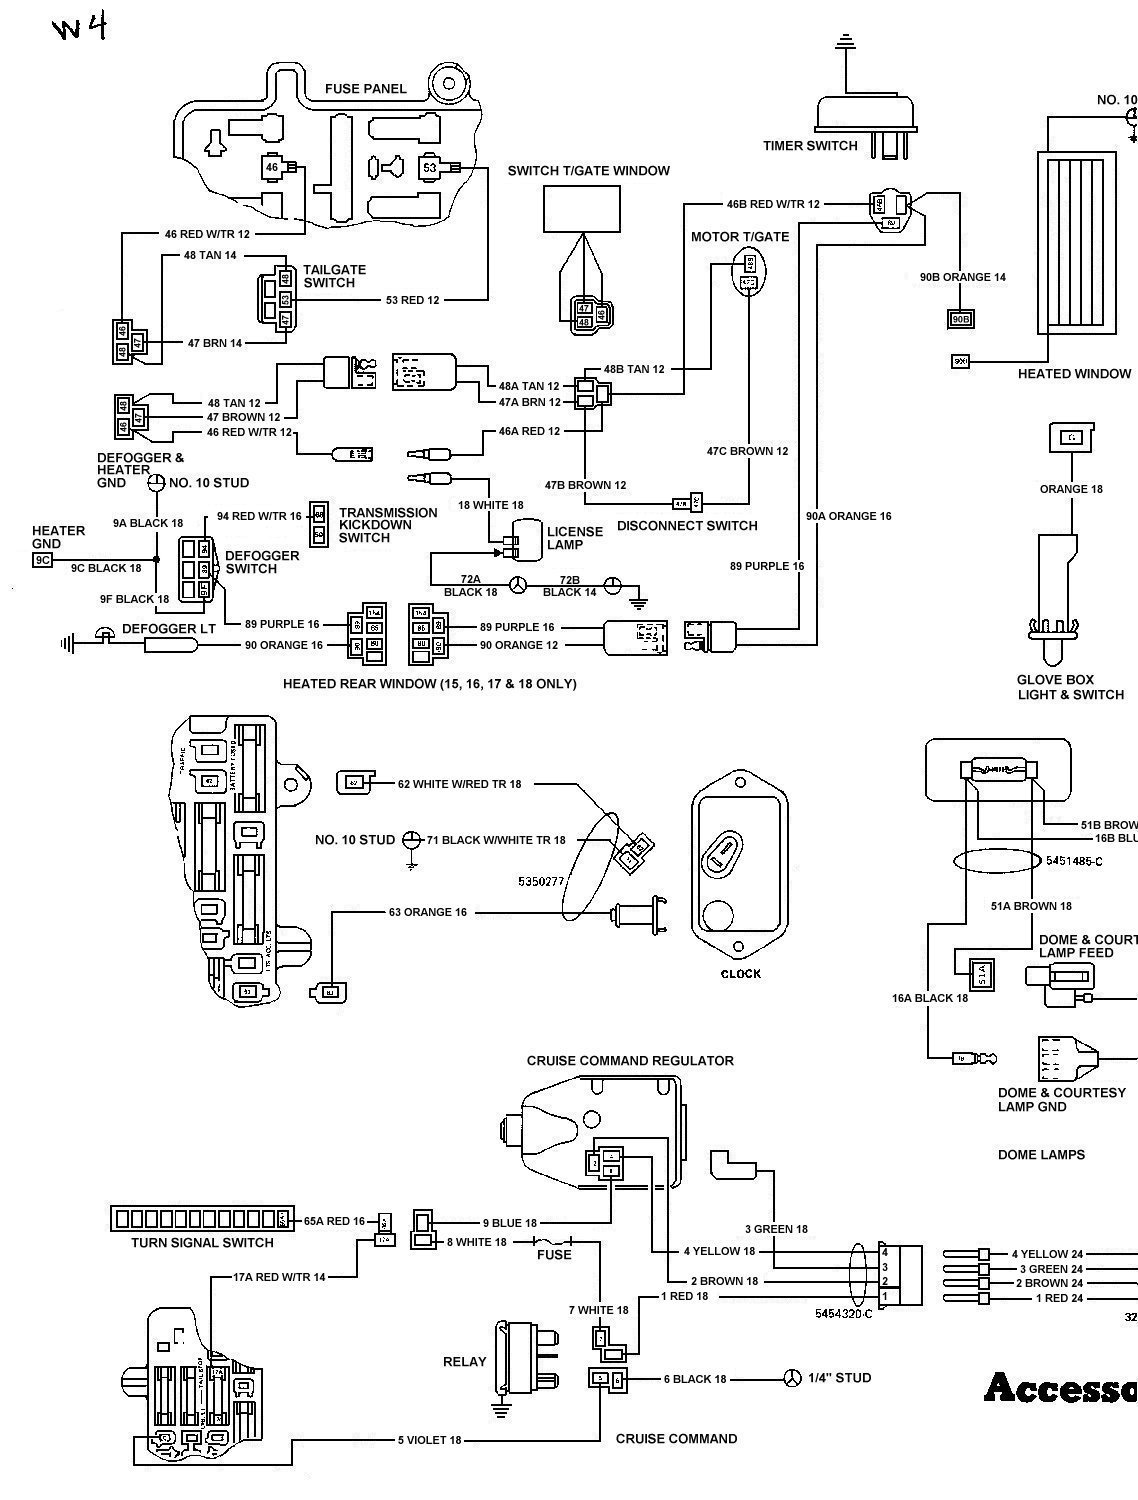 hight resolution of 85 jeep cj7 wiring diagram wiring diagram 85 jeep cj7 wiring diagram